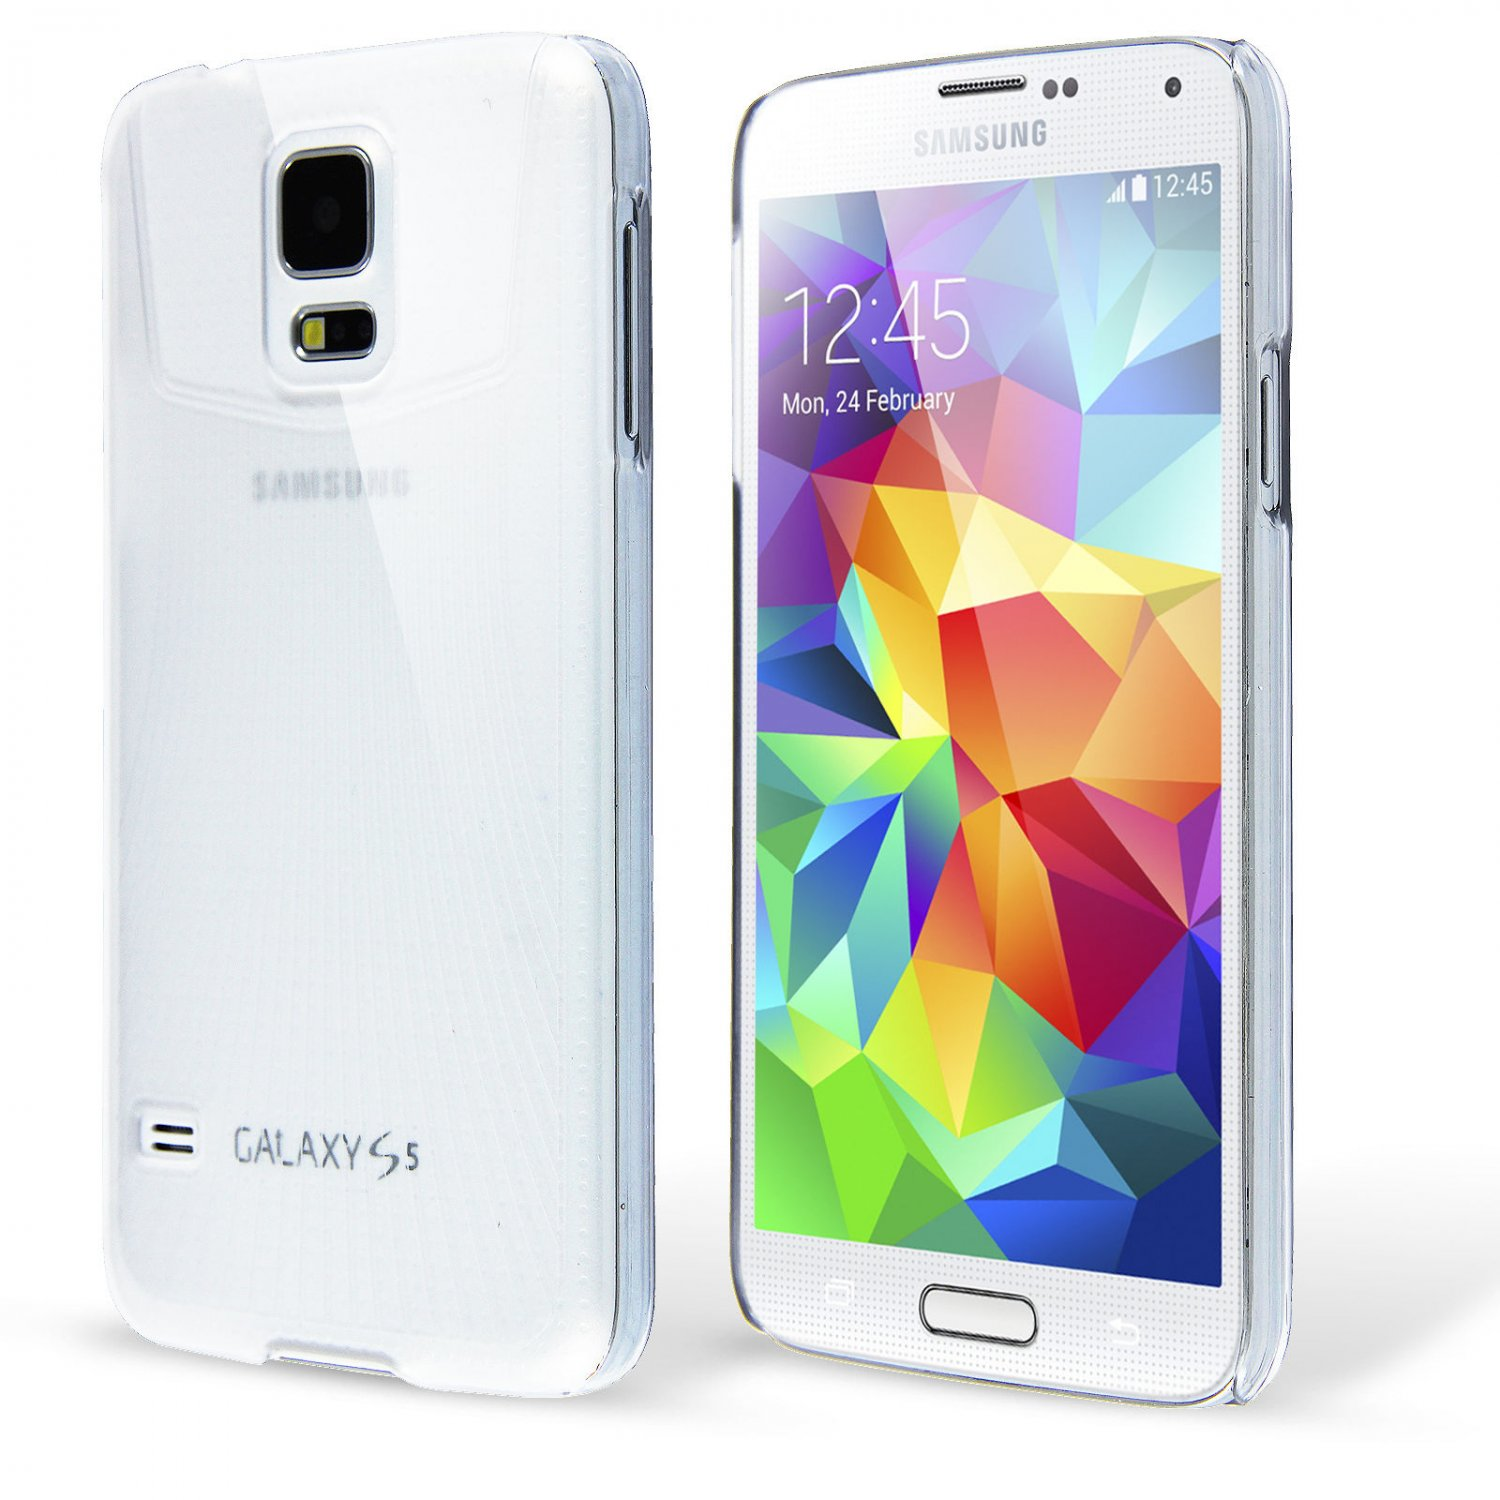 Thin Crystal Clear Hard Snap On Case for Galaxy S5 i9600